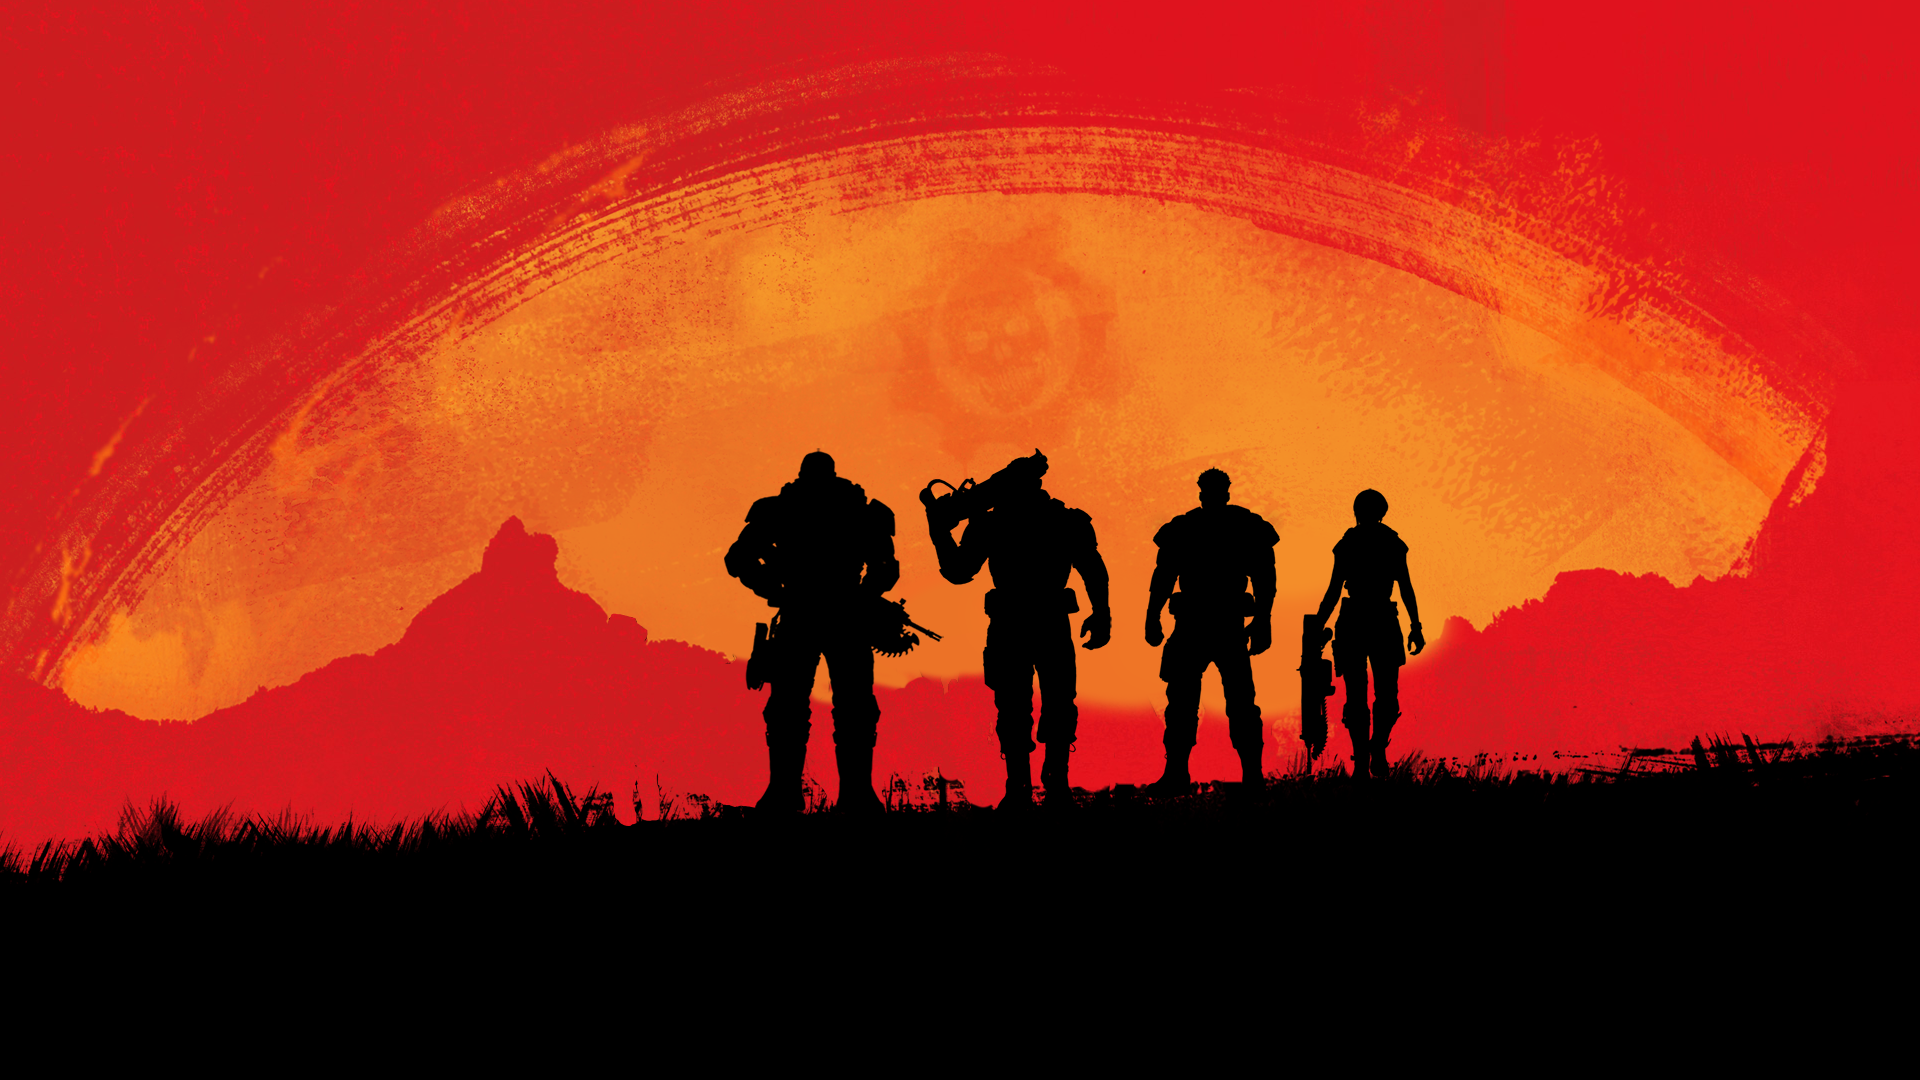 Red Dead Redemption 2 Wallpapers Hd Red Dead Redemption 2